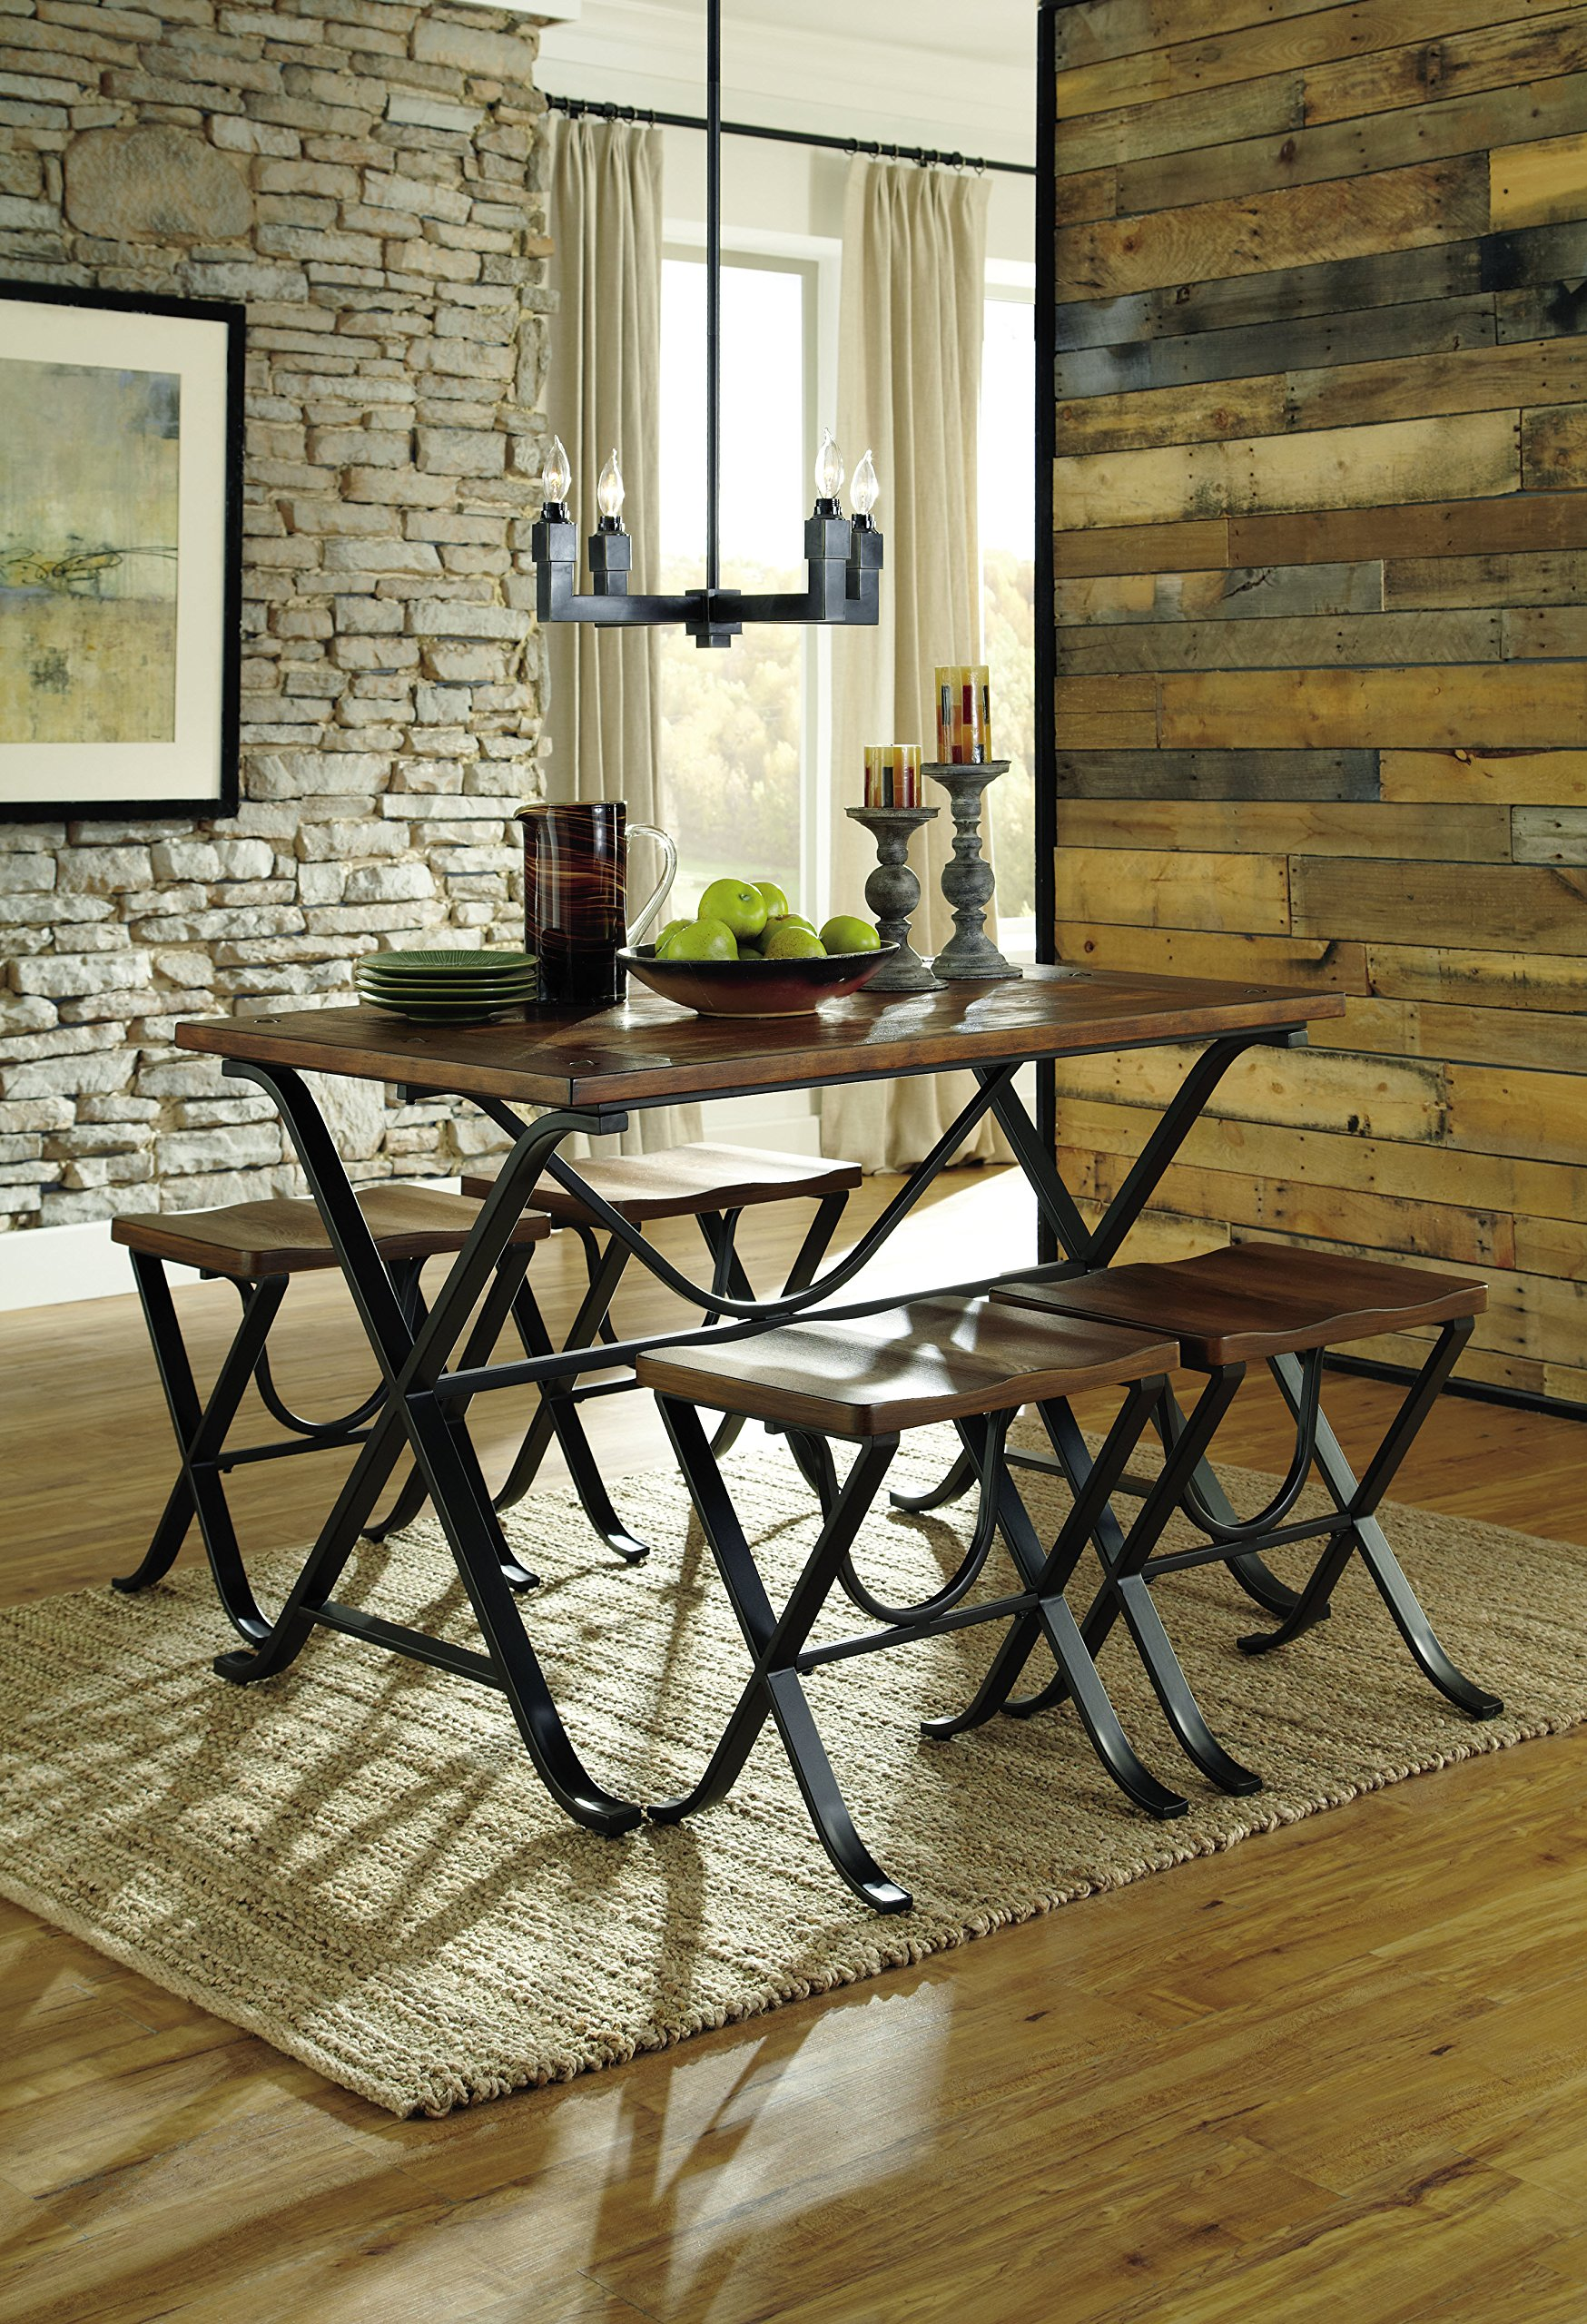 Ashley Furniture Signature Design - Freimore Dining Room Table and Stools - Set of 5 - Medium Brown Wood Top and Black Metal Legs by Signature Design by Ashley (Image #6)